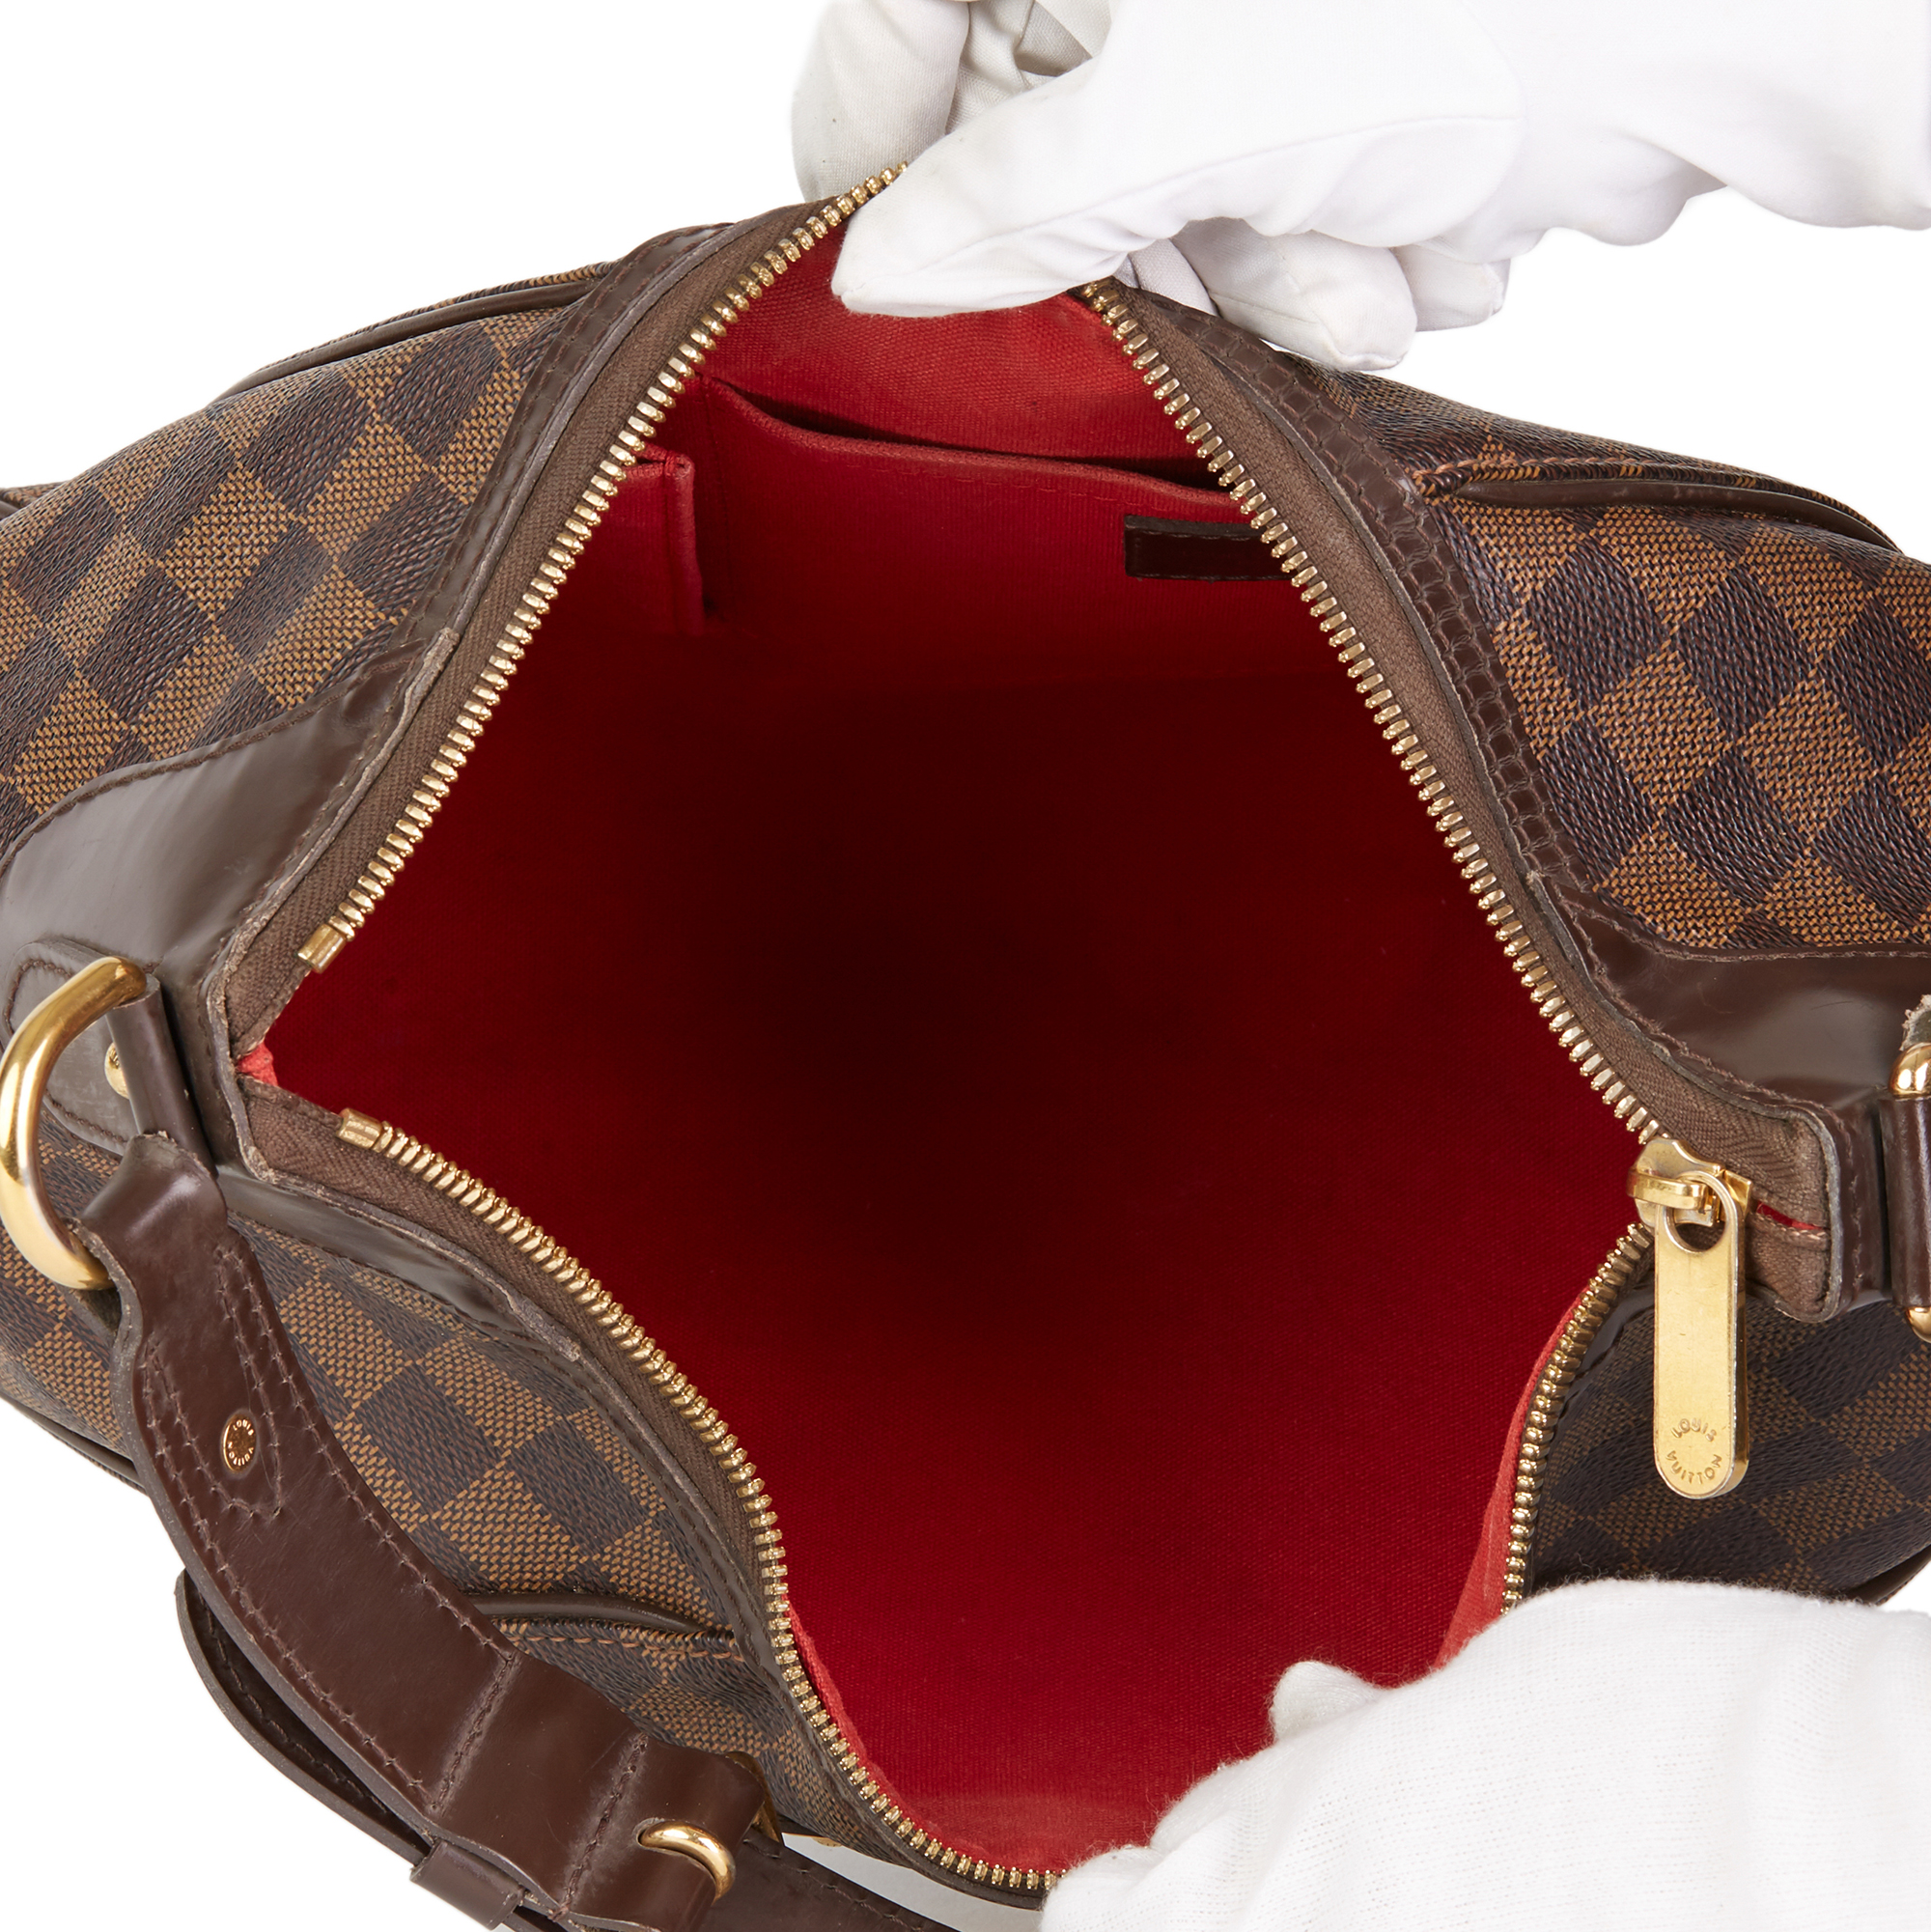 Louis Vuitton Brown Damier Ebene Monogram Coated Canvas Thames PM - Image 3 of 10